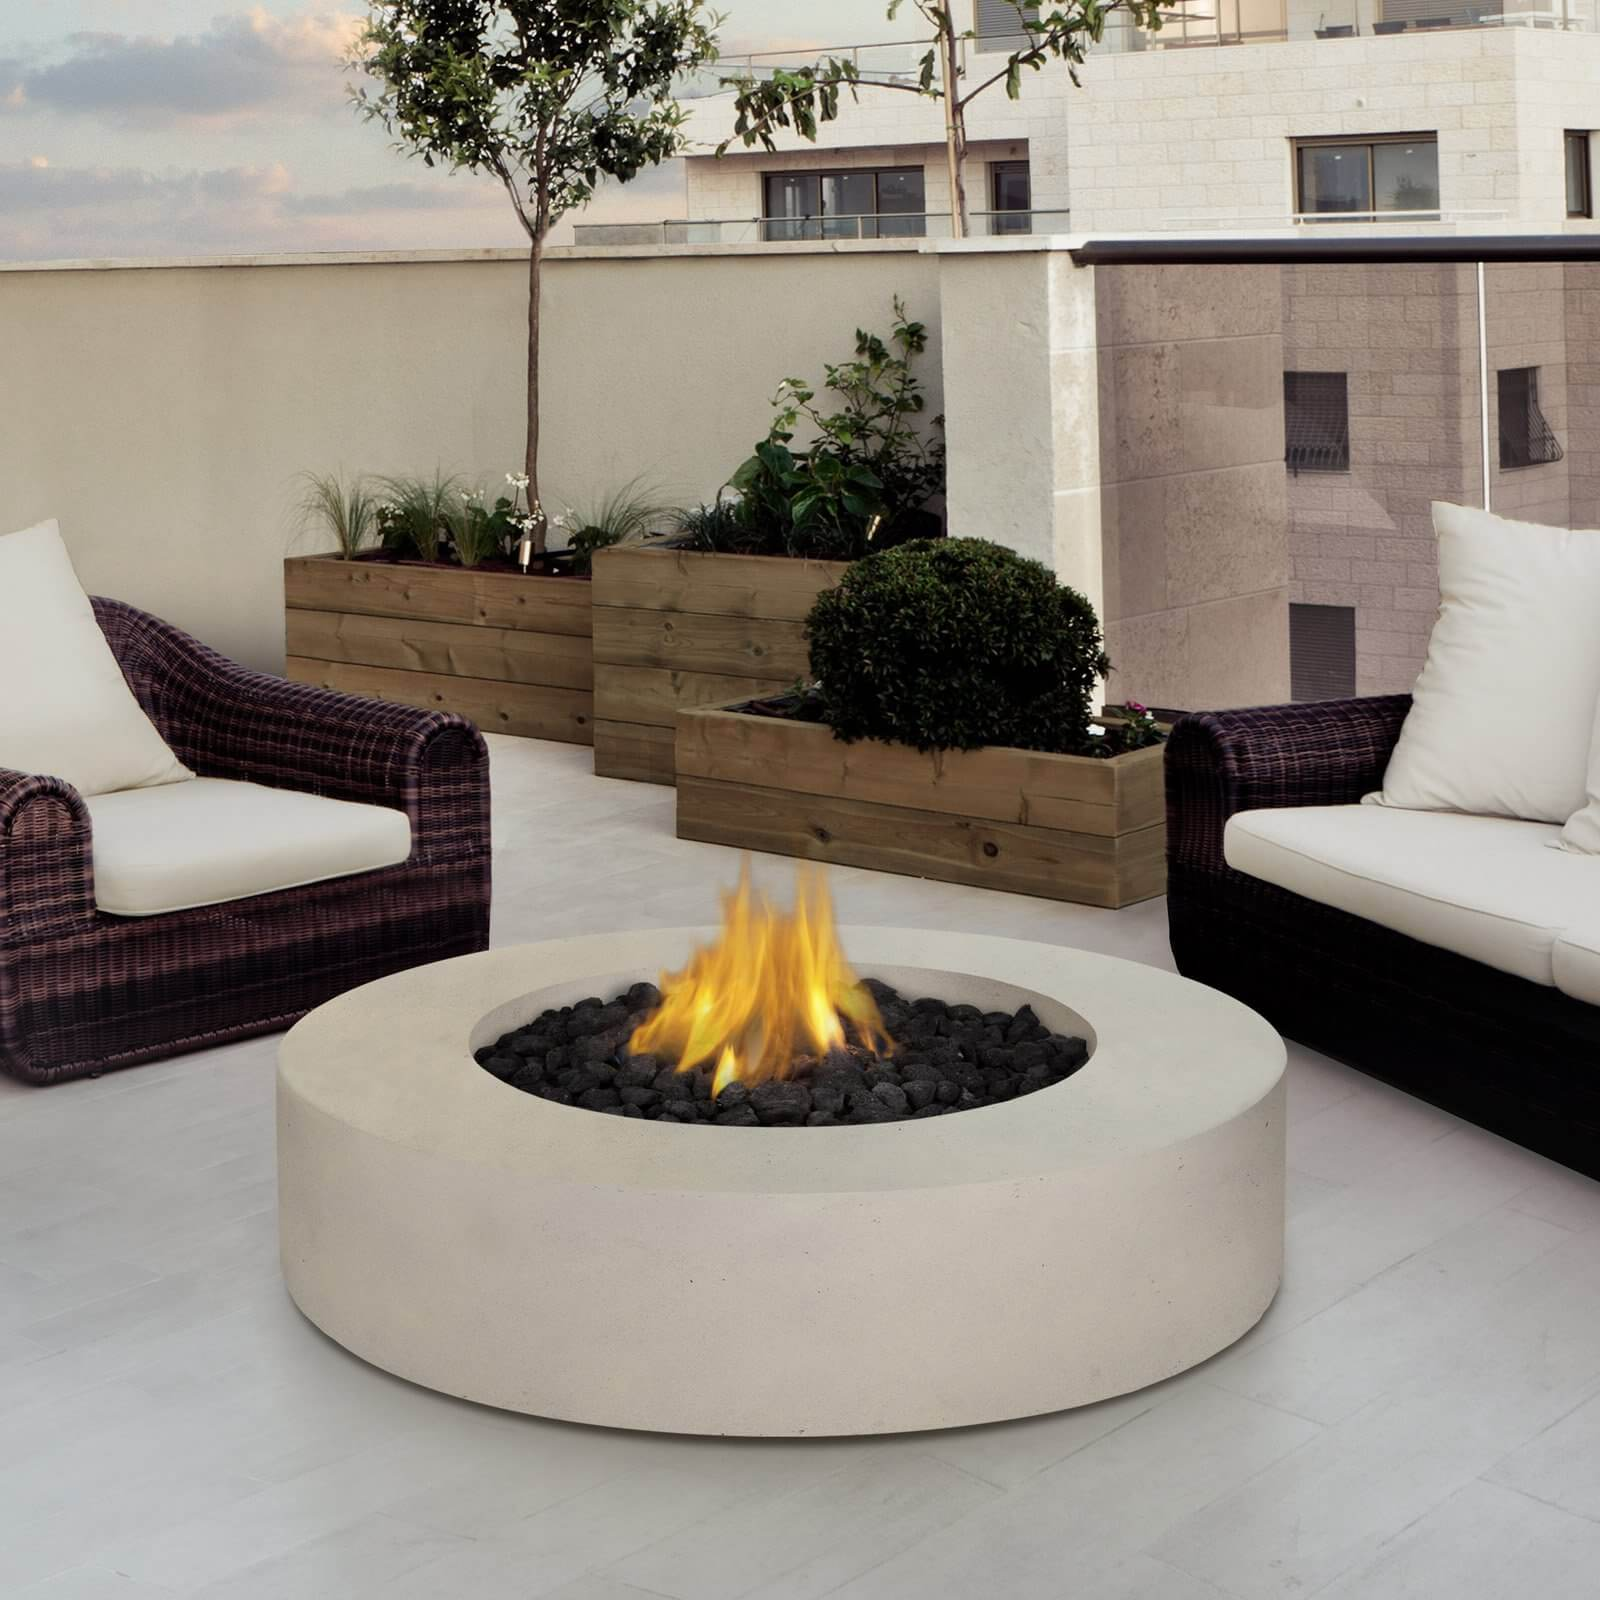 Covering a brick fireplace - Want A Simple And Elegant Fire Pit Table Then Why Not Get This White